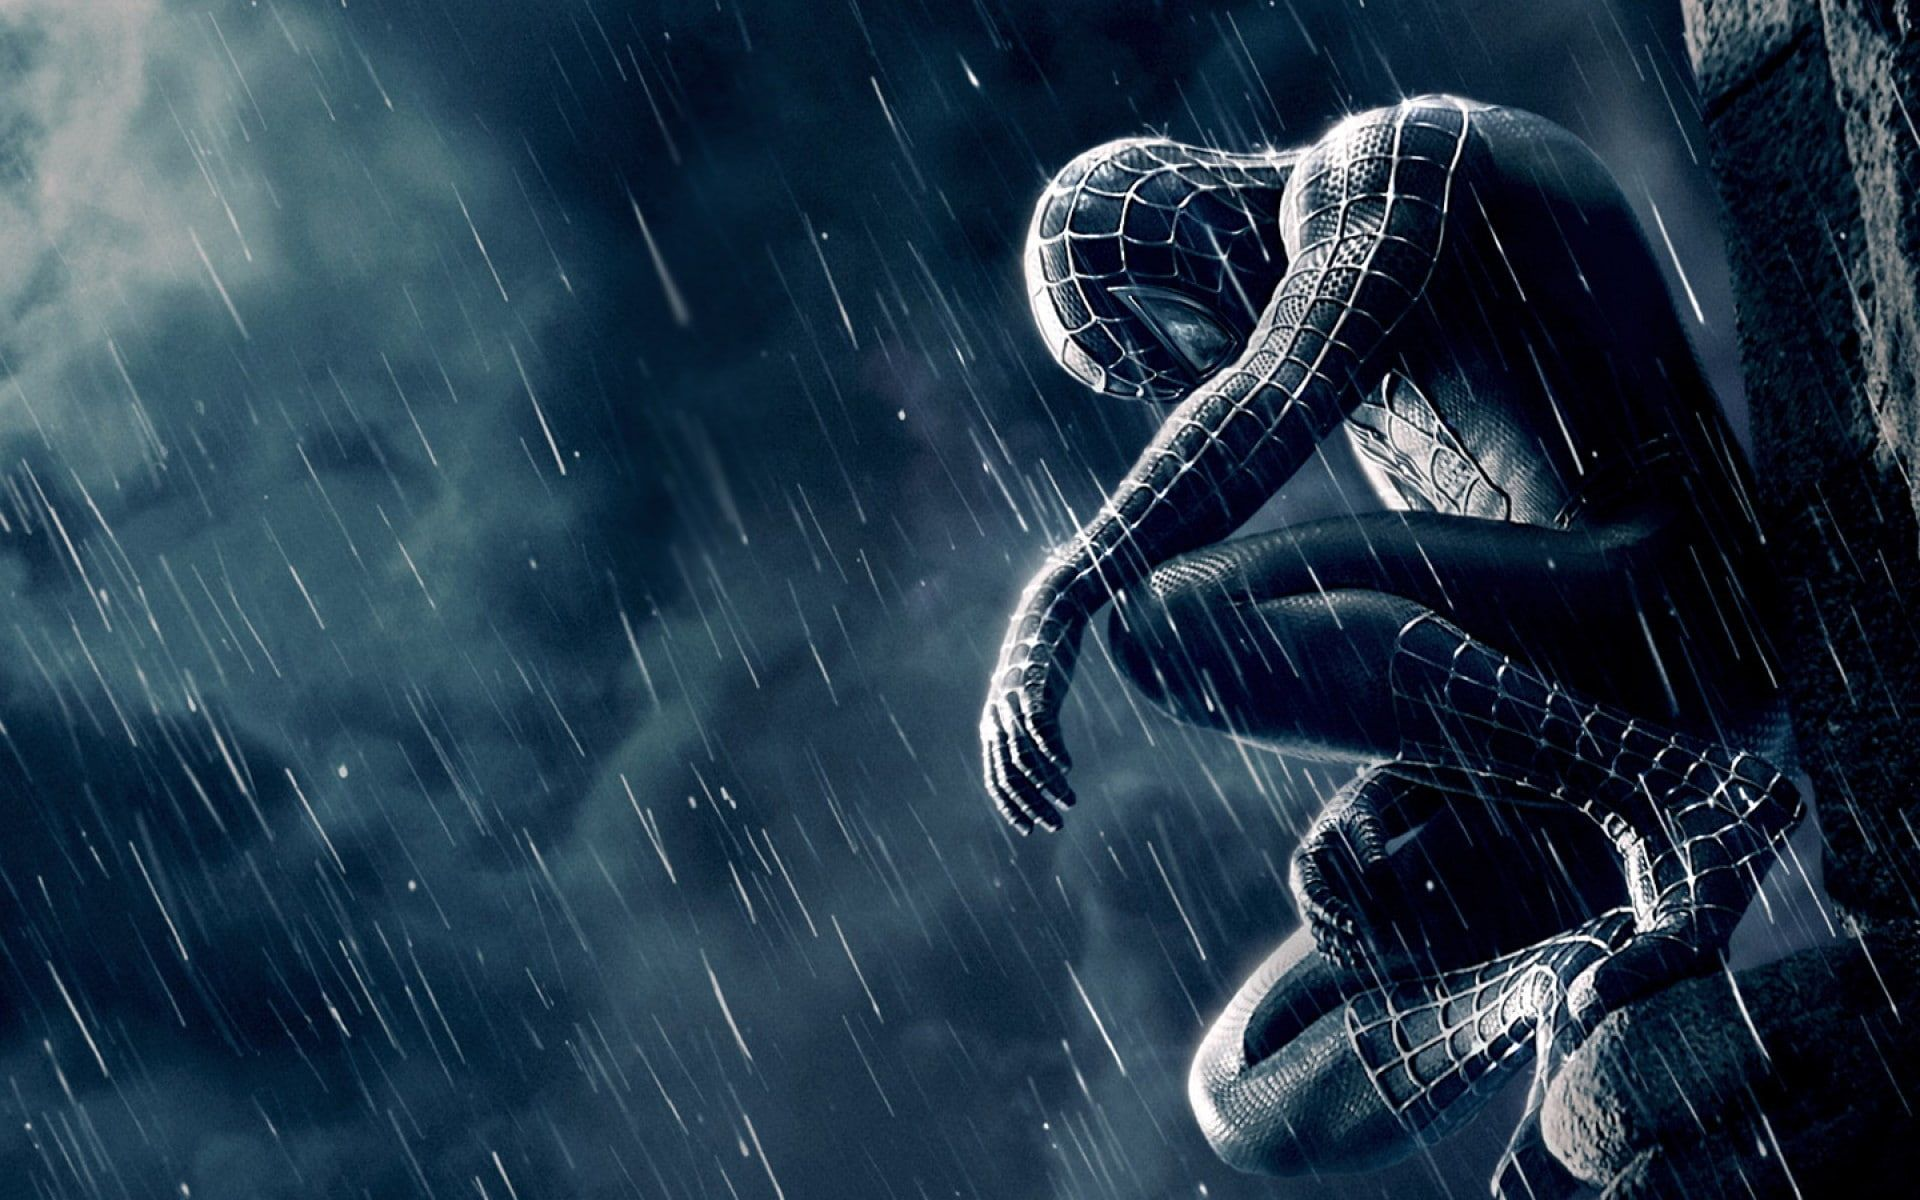 Movie Spiderma 1920x1200 Spiderman 4k 1080p Wallpaper Hdwallpaper Desktop Spiderman Pictures Spiderman 3 Wallpaper Spiderman